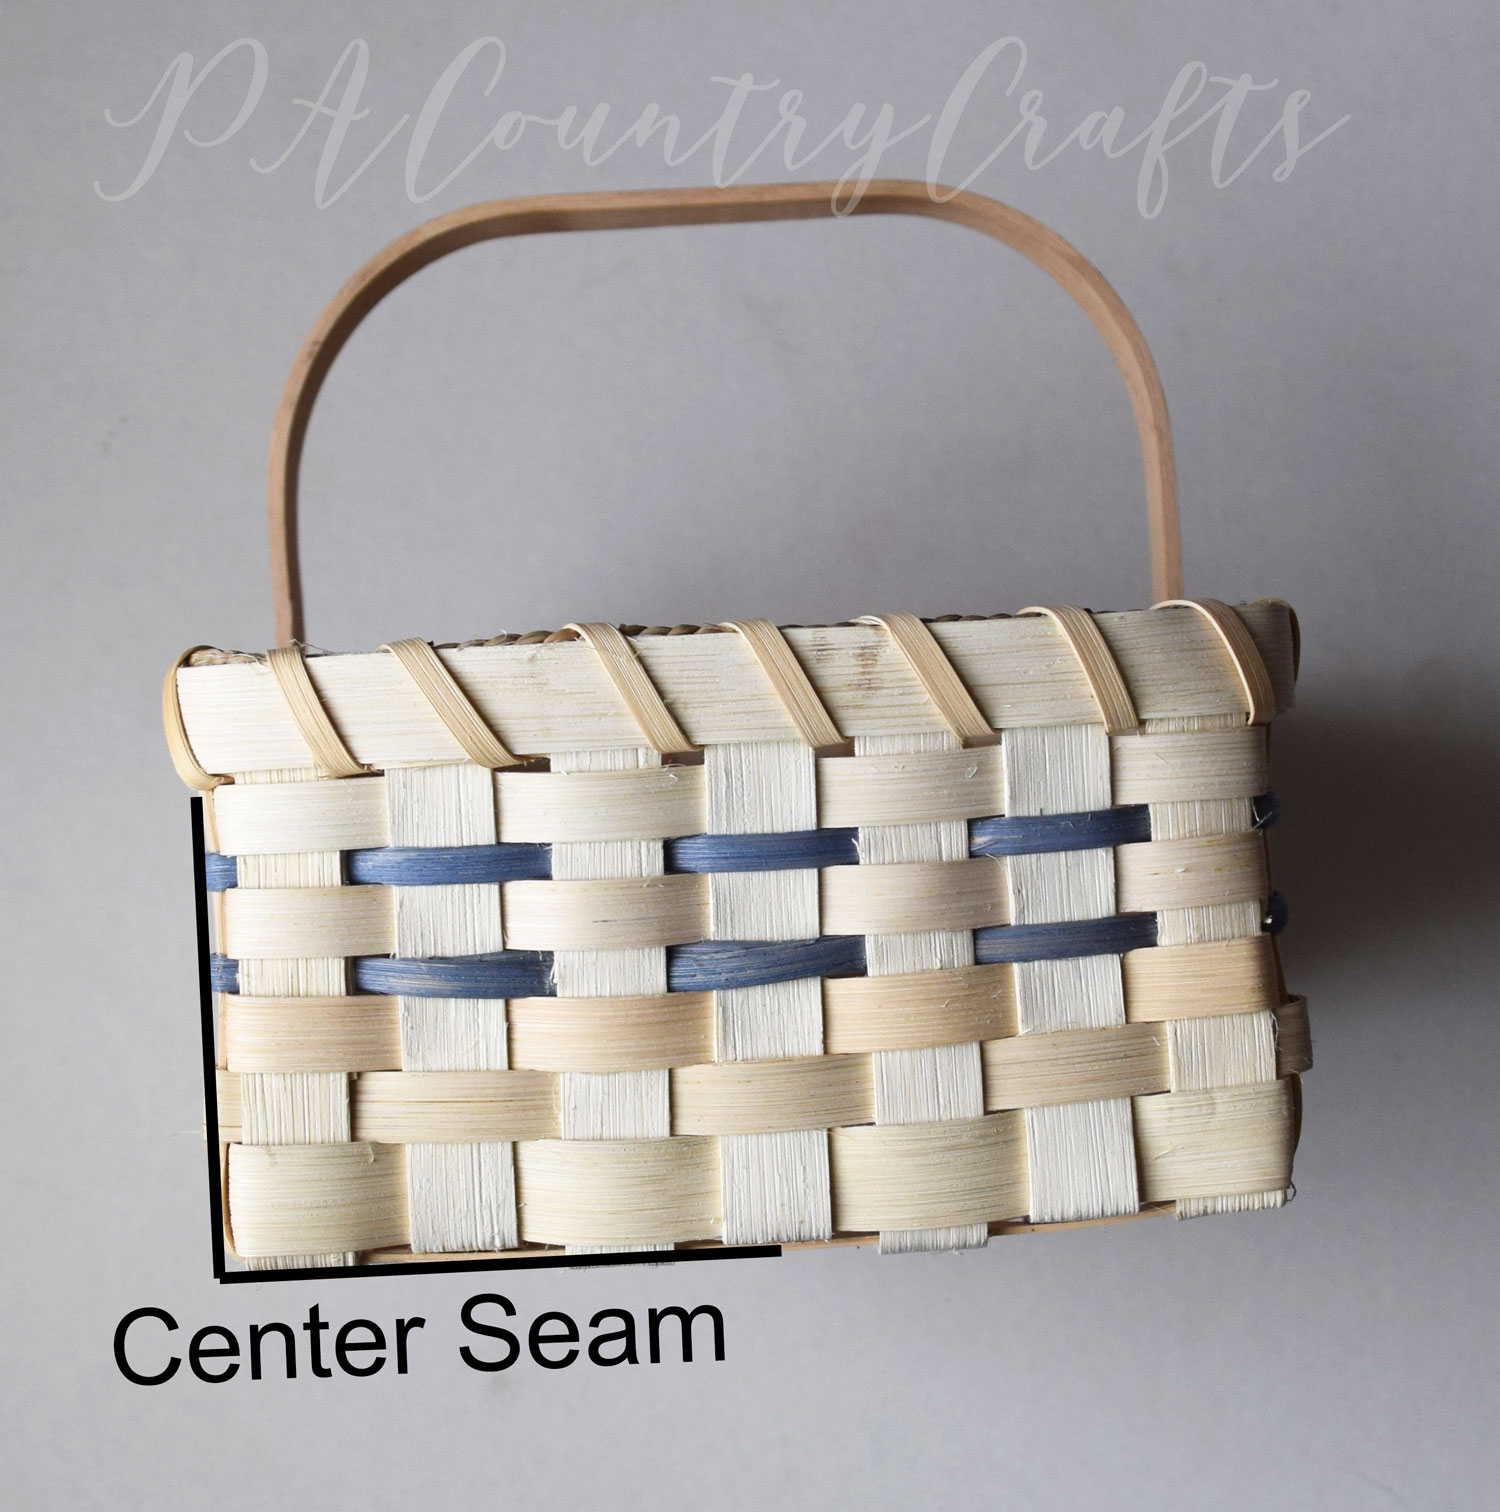 How to make a liner for a basket with handles